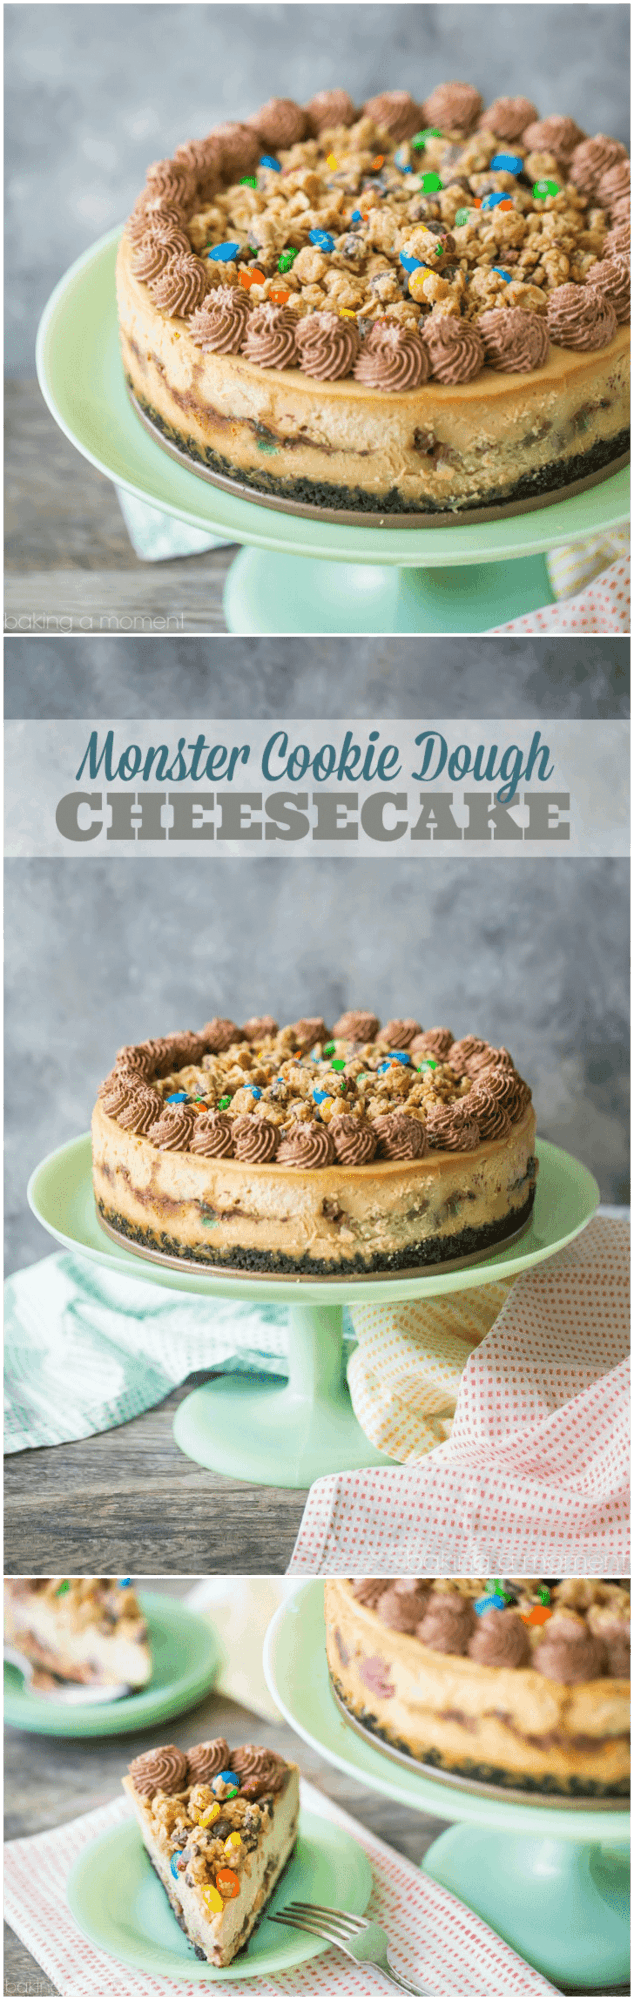 Monster Cookie Dough Cheesecake: OMG this dessert is completely over-the-top! Peanut butter cheesecake with hunks of peanut butter oatmeal m&m cookie dough, on an Oreo cookie crust, with more cookie dough on top and swirls of chocolate whipped cream. Such an incredible indulgence!